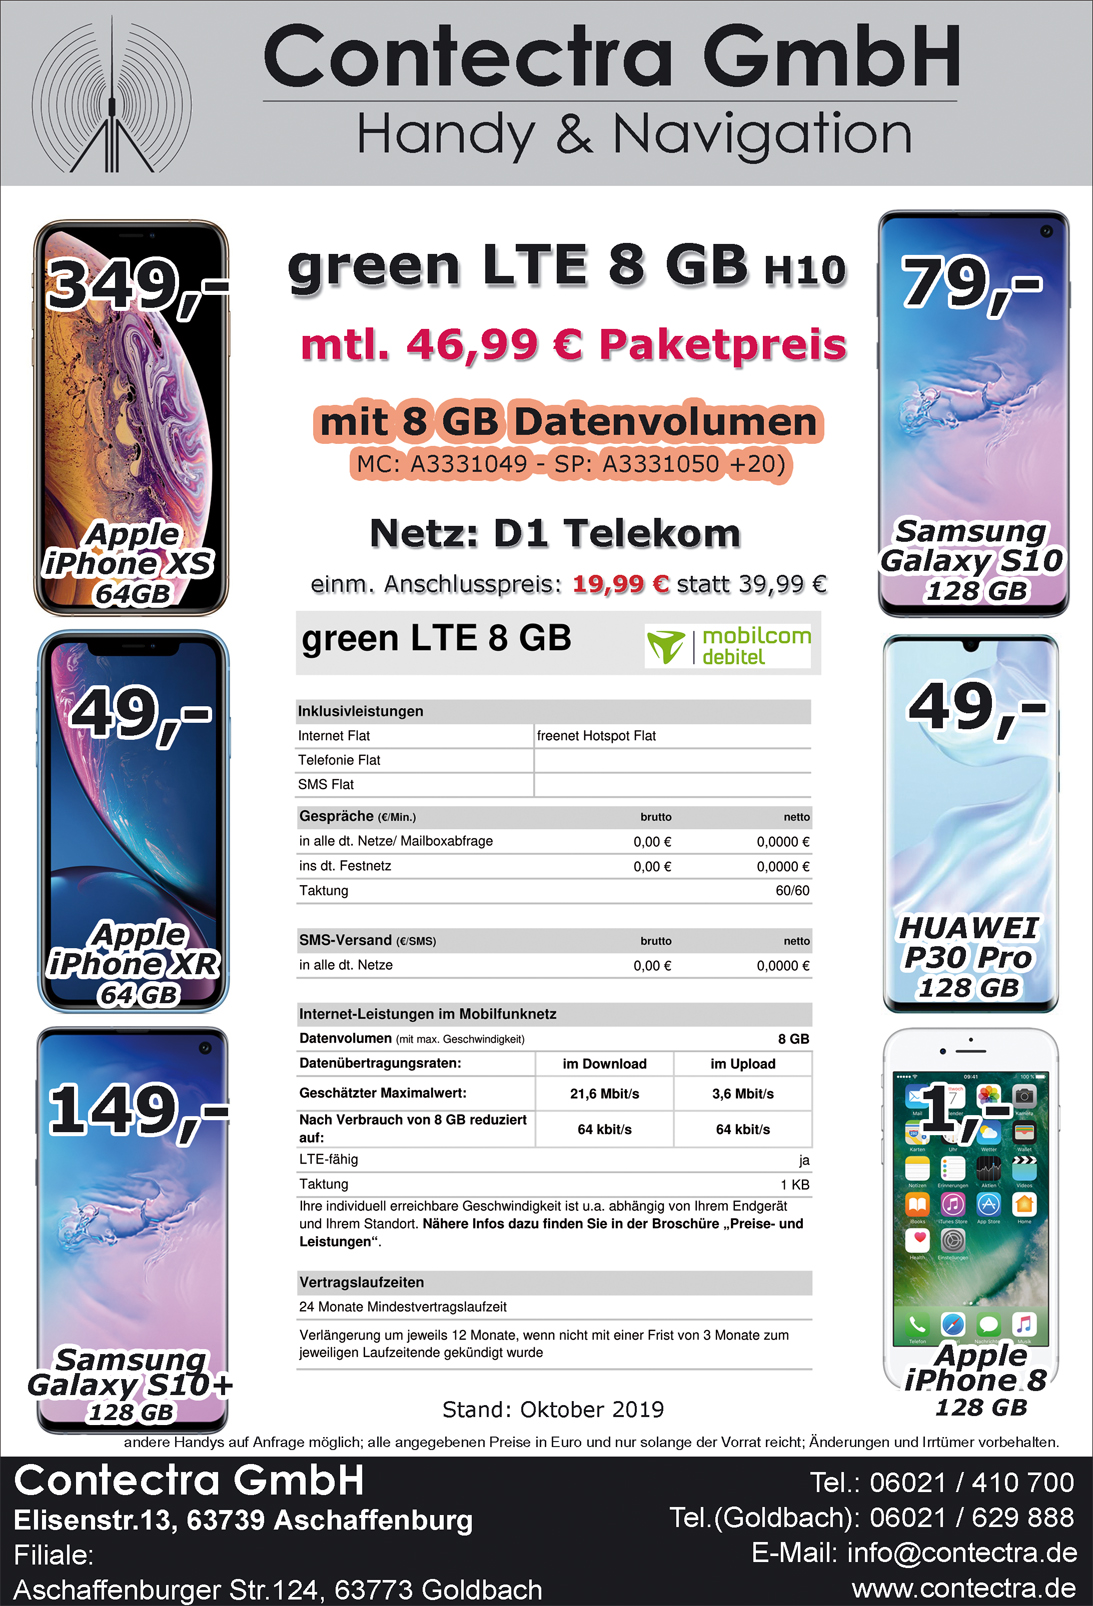 green LTE 8 GB H10 Kopie